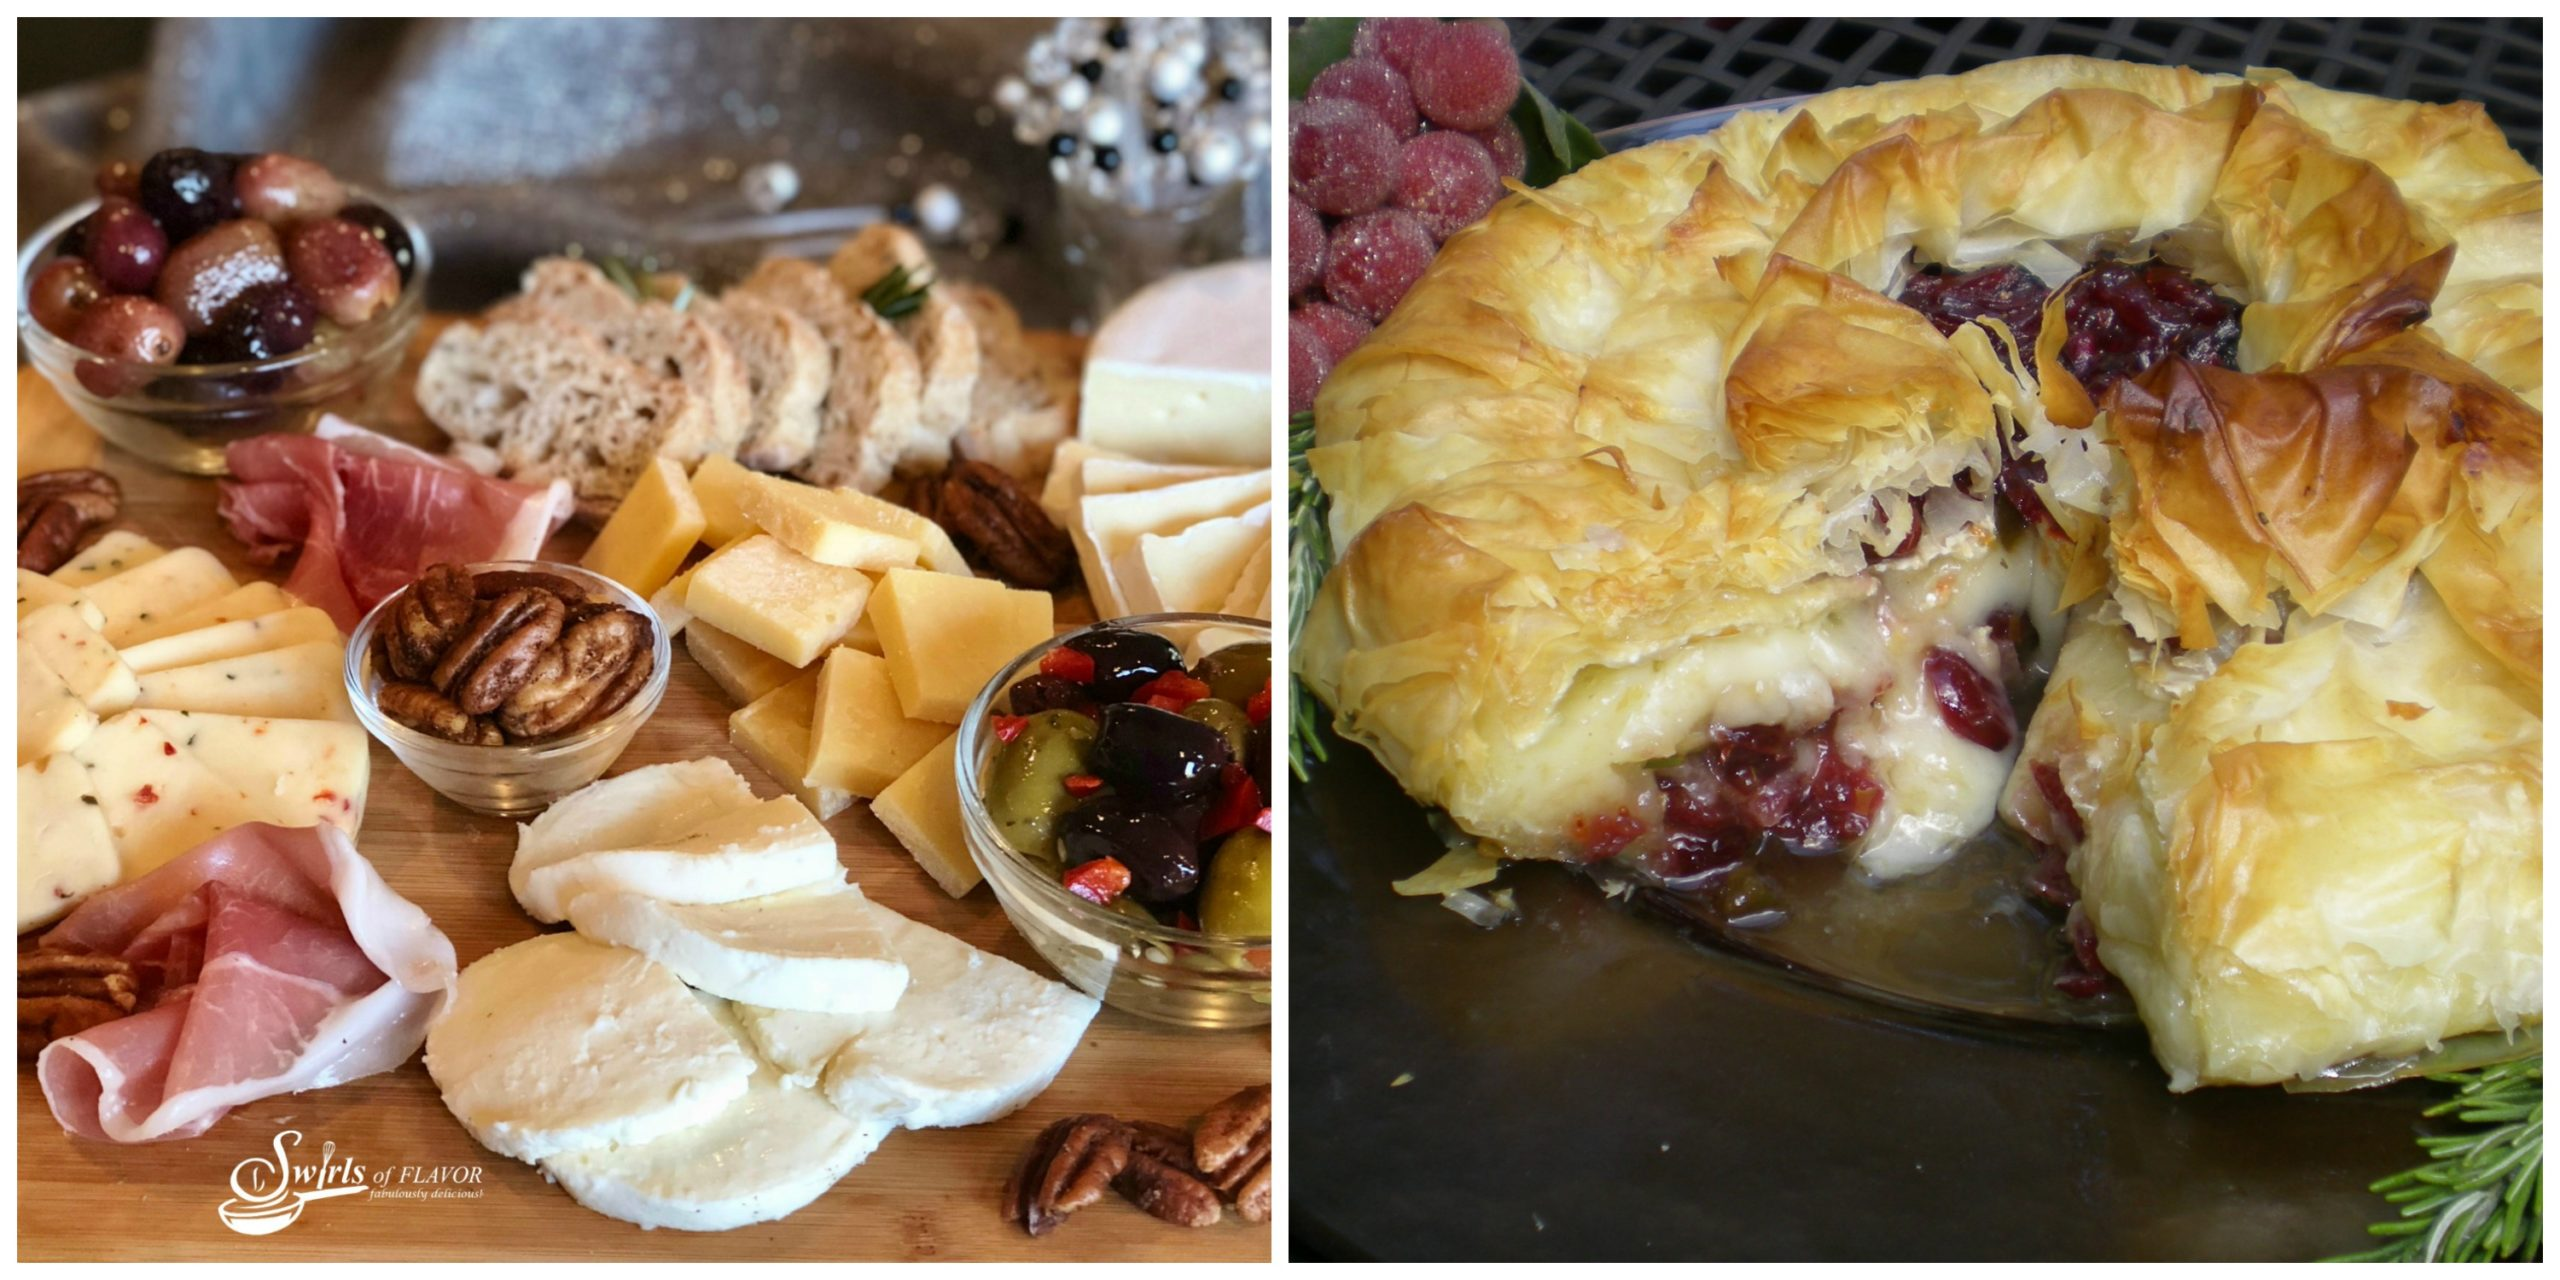 Holiday Cheese Board and Baked Brie